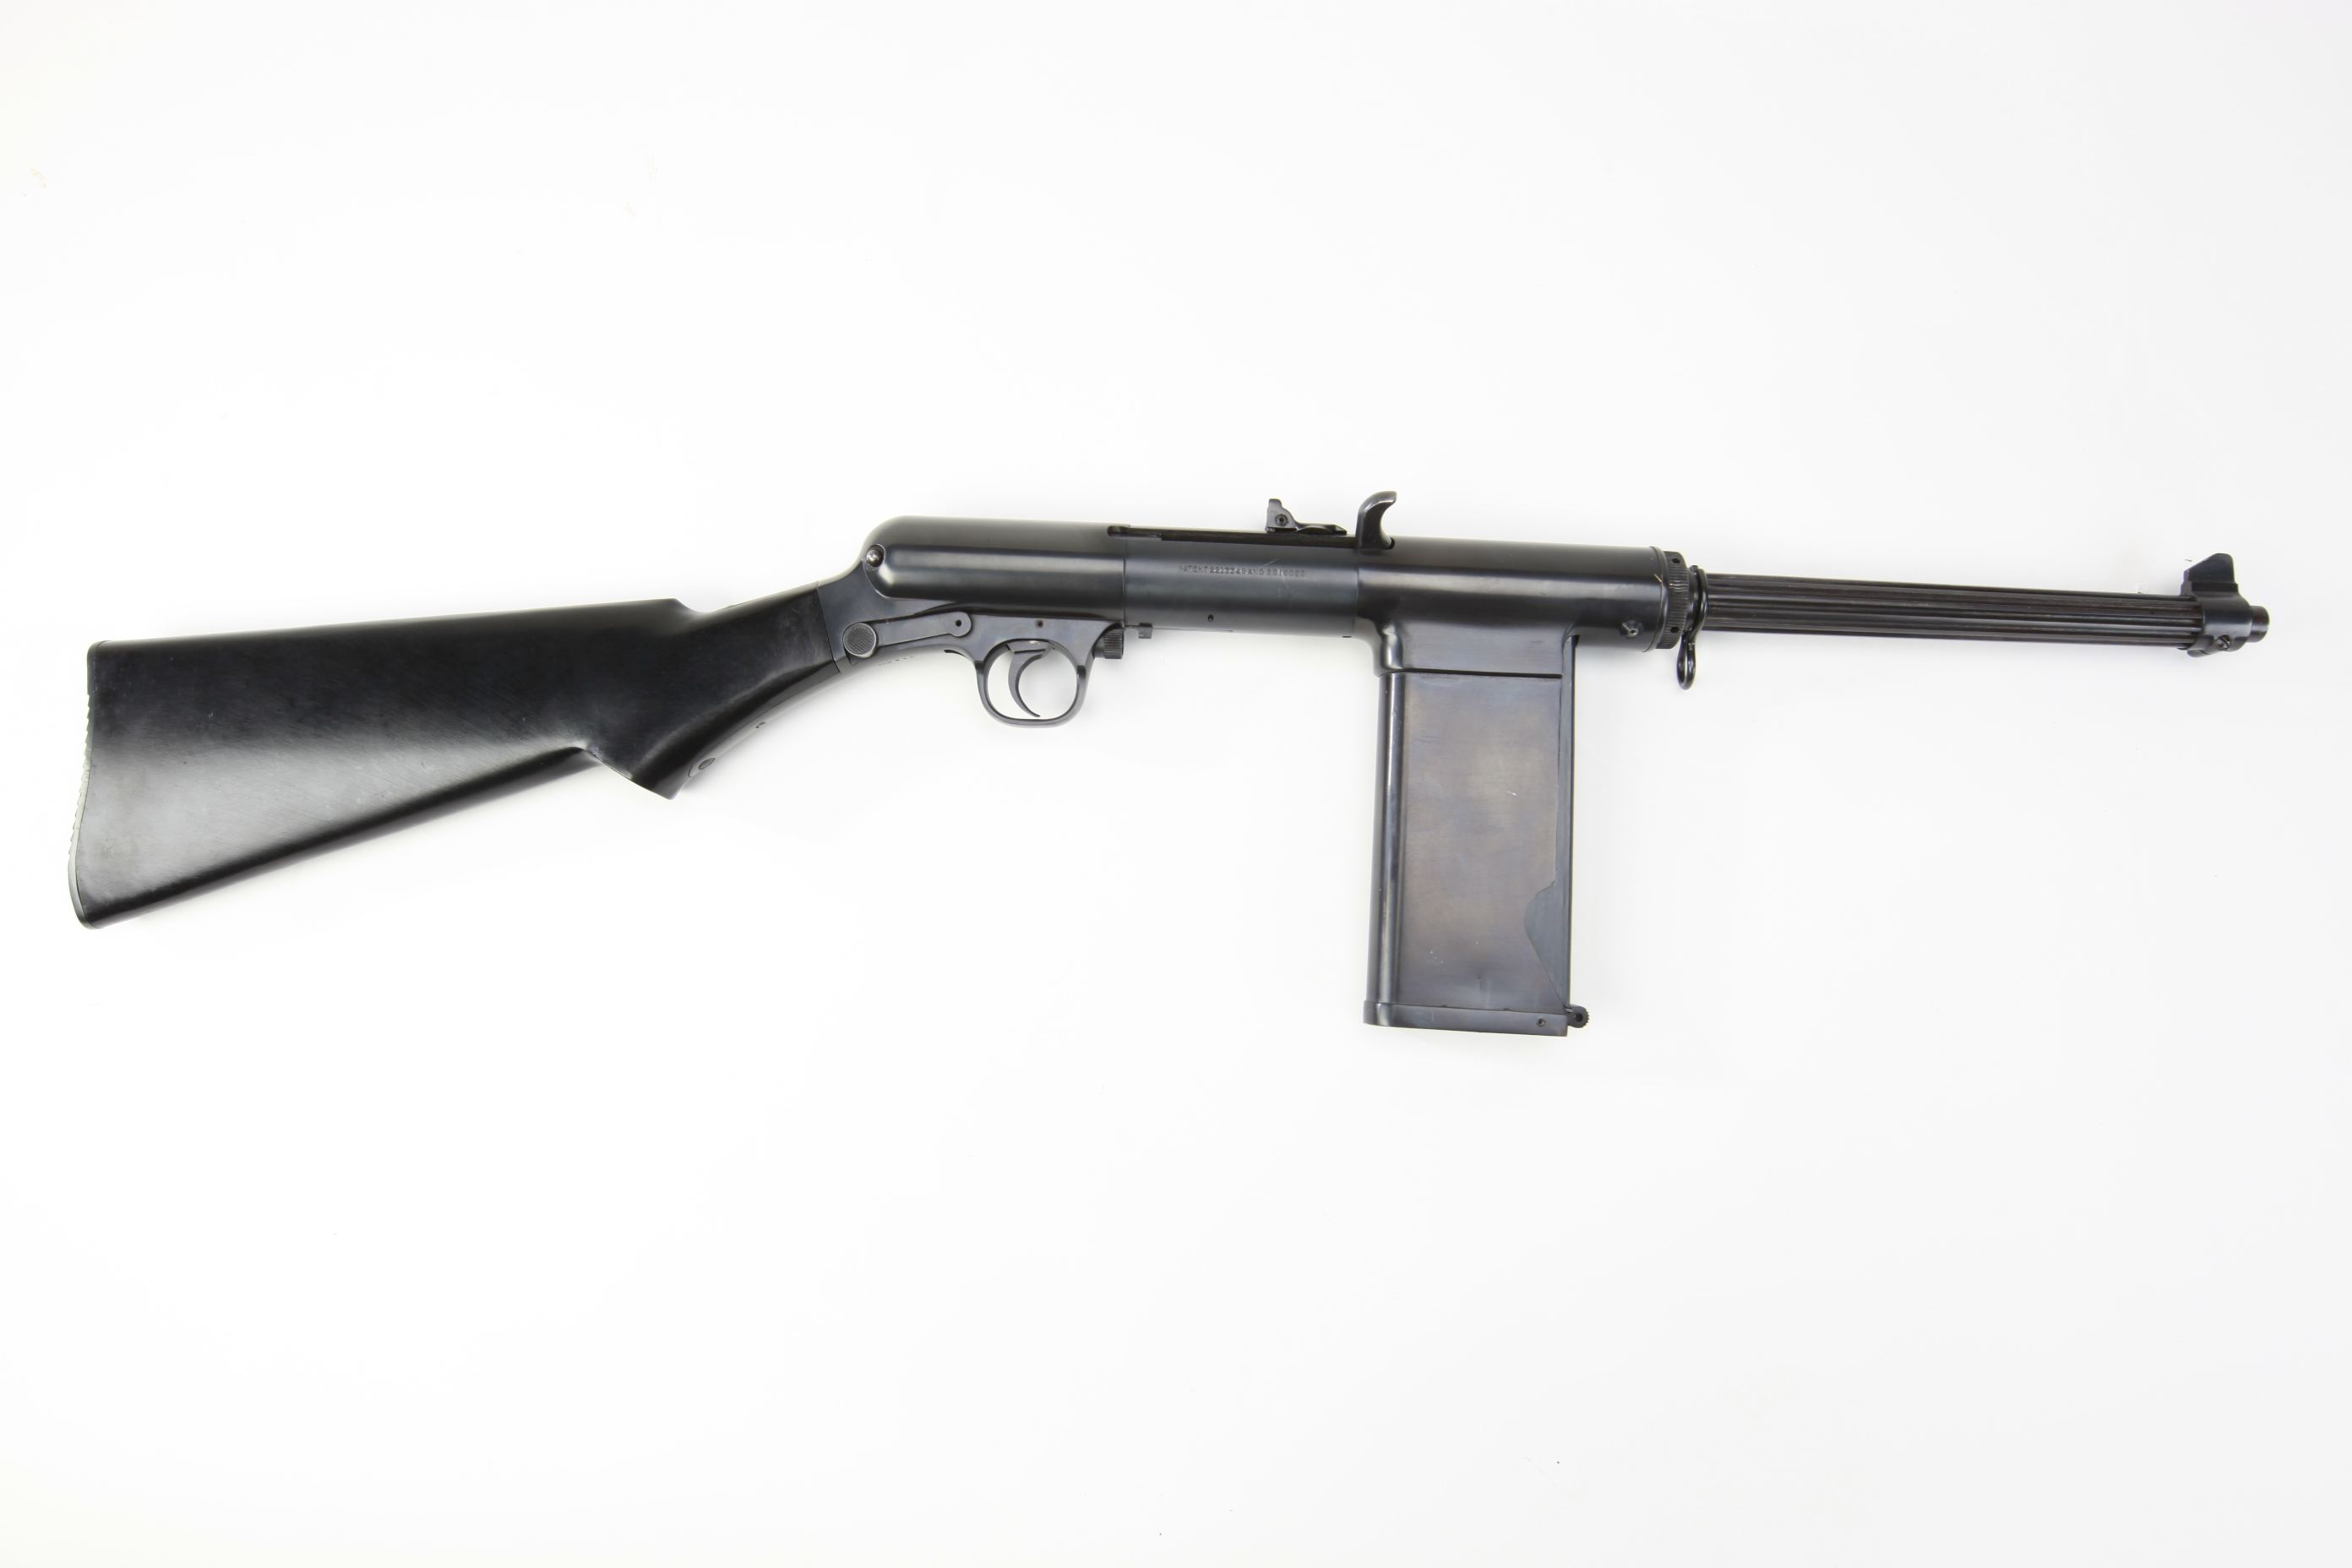 Smith & Wesson Model 1940 Semi Automatic Light Rifle